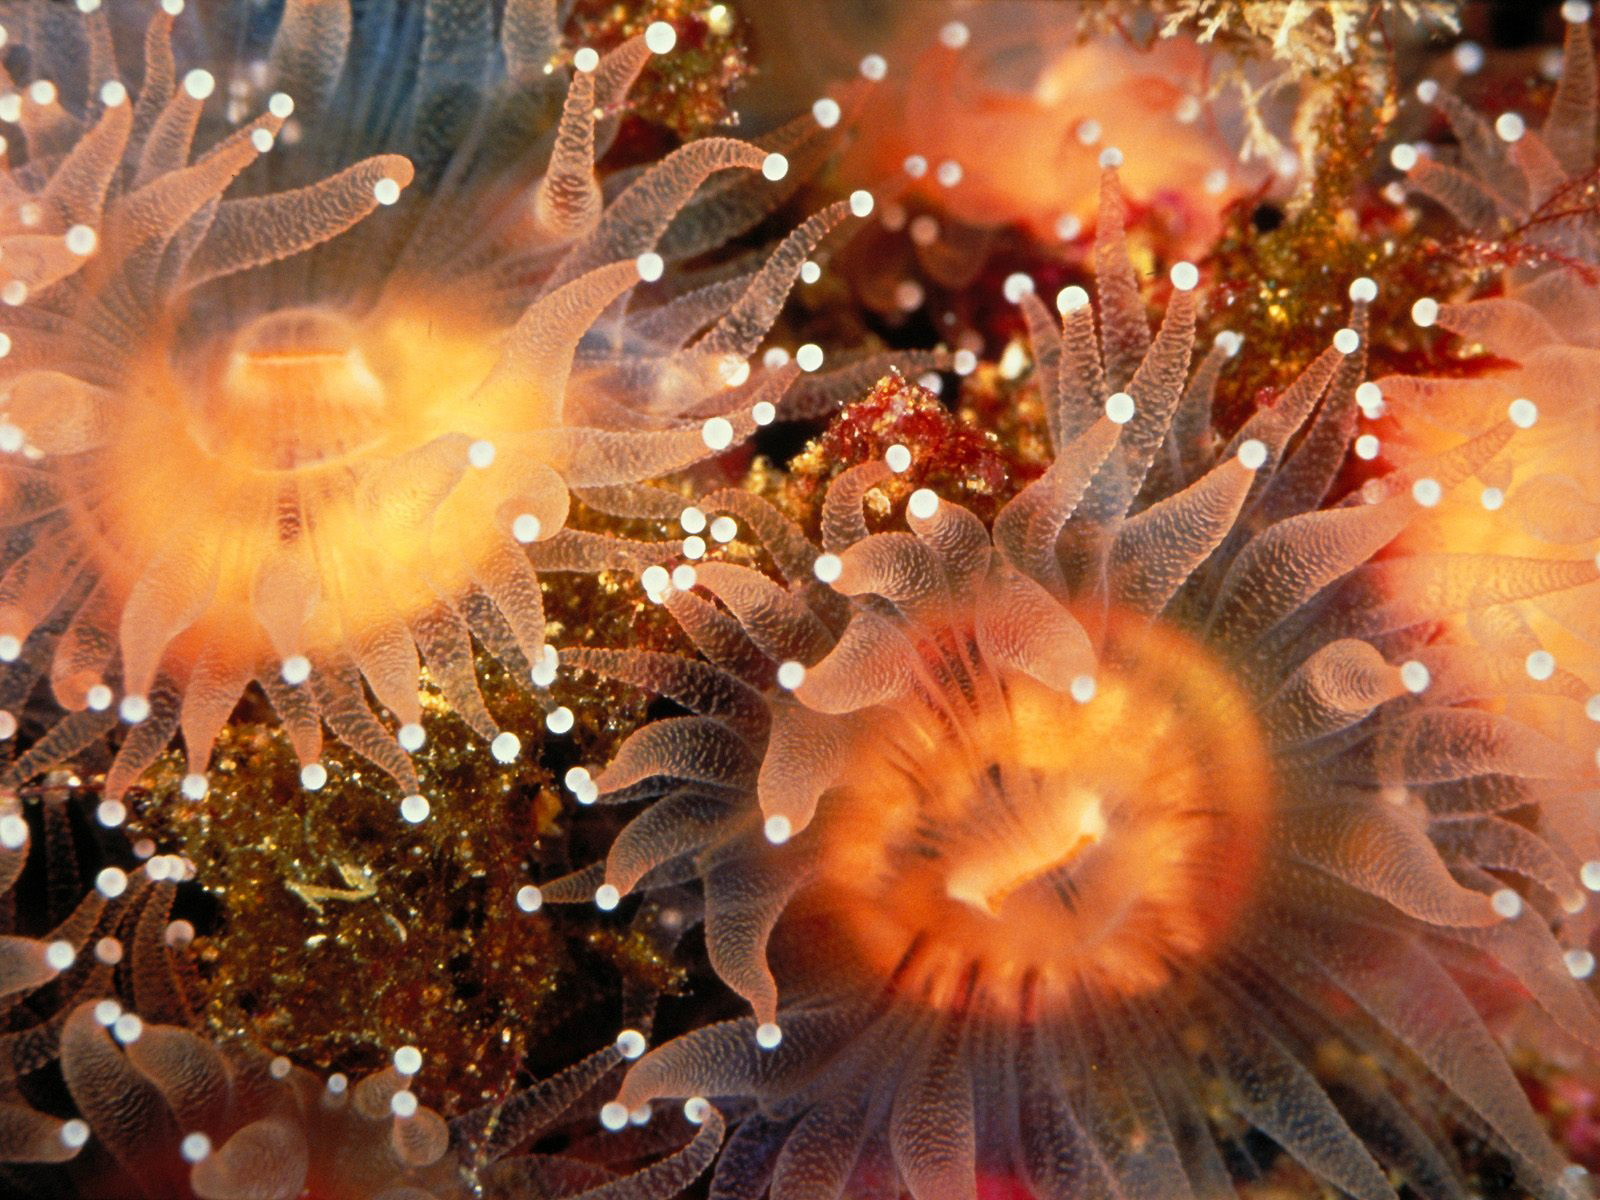 Underwater Sea Creatures